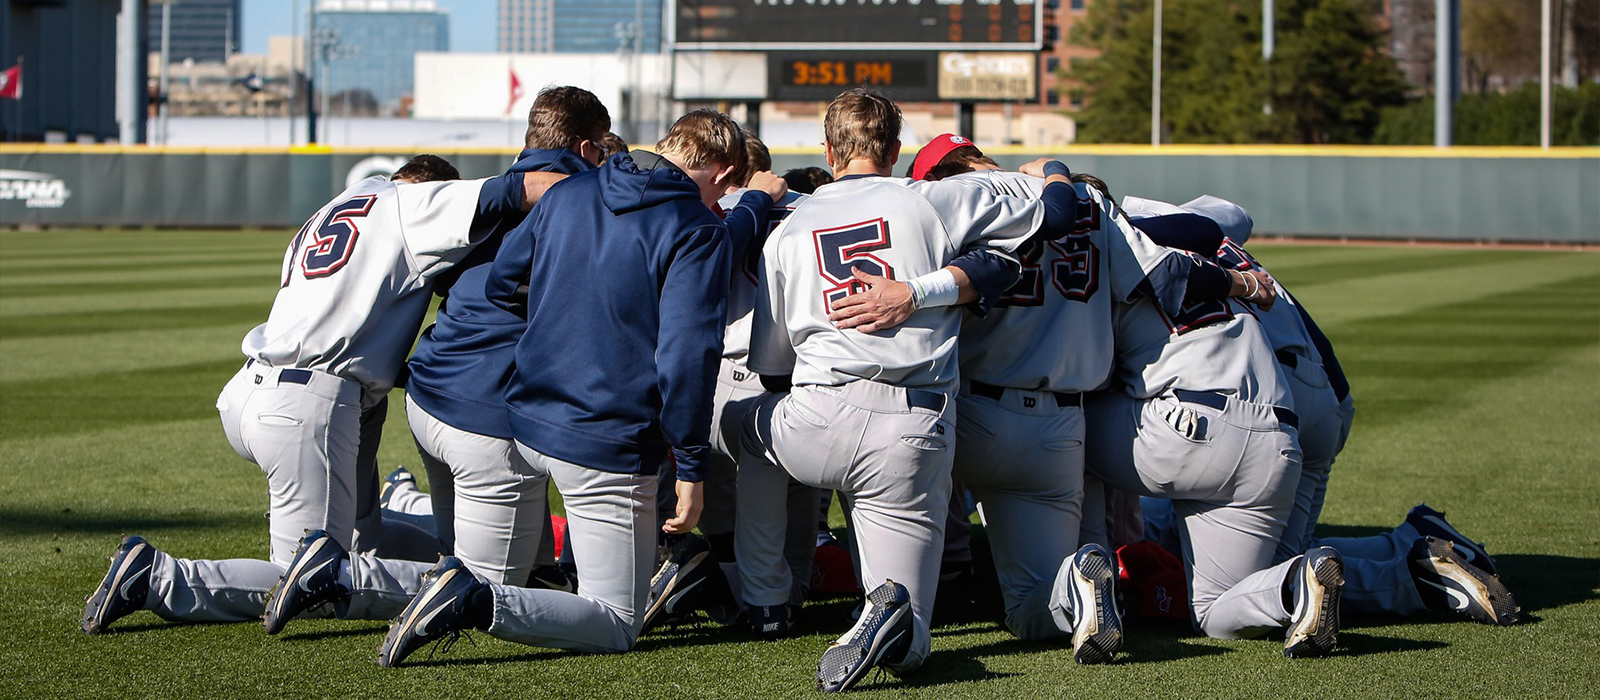 Belmont baseball kicks off postseason play as the No. 3 seed in the 2017 OVC Tournament